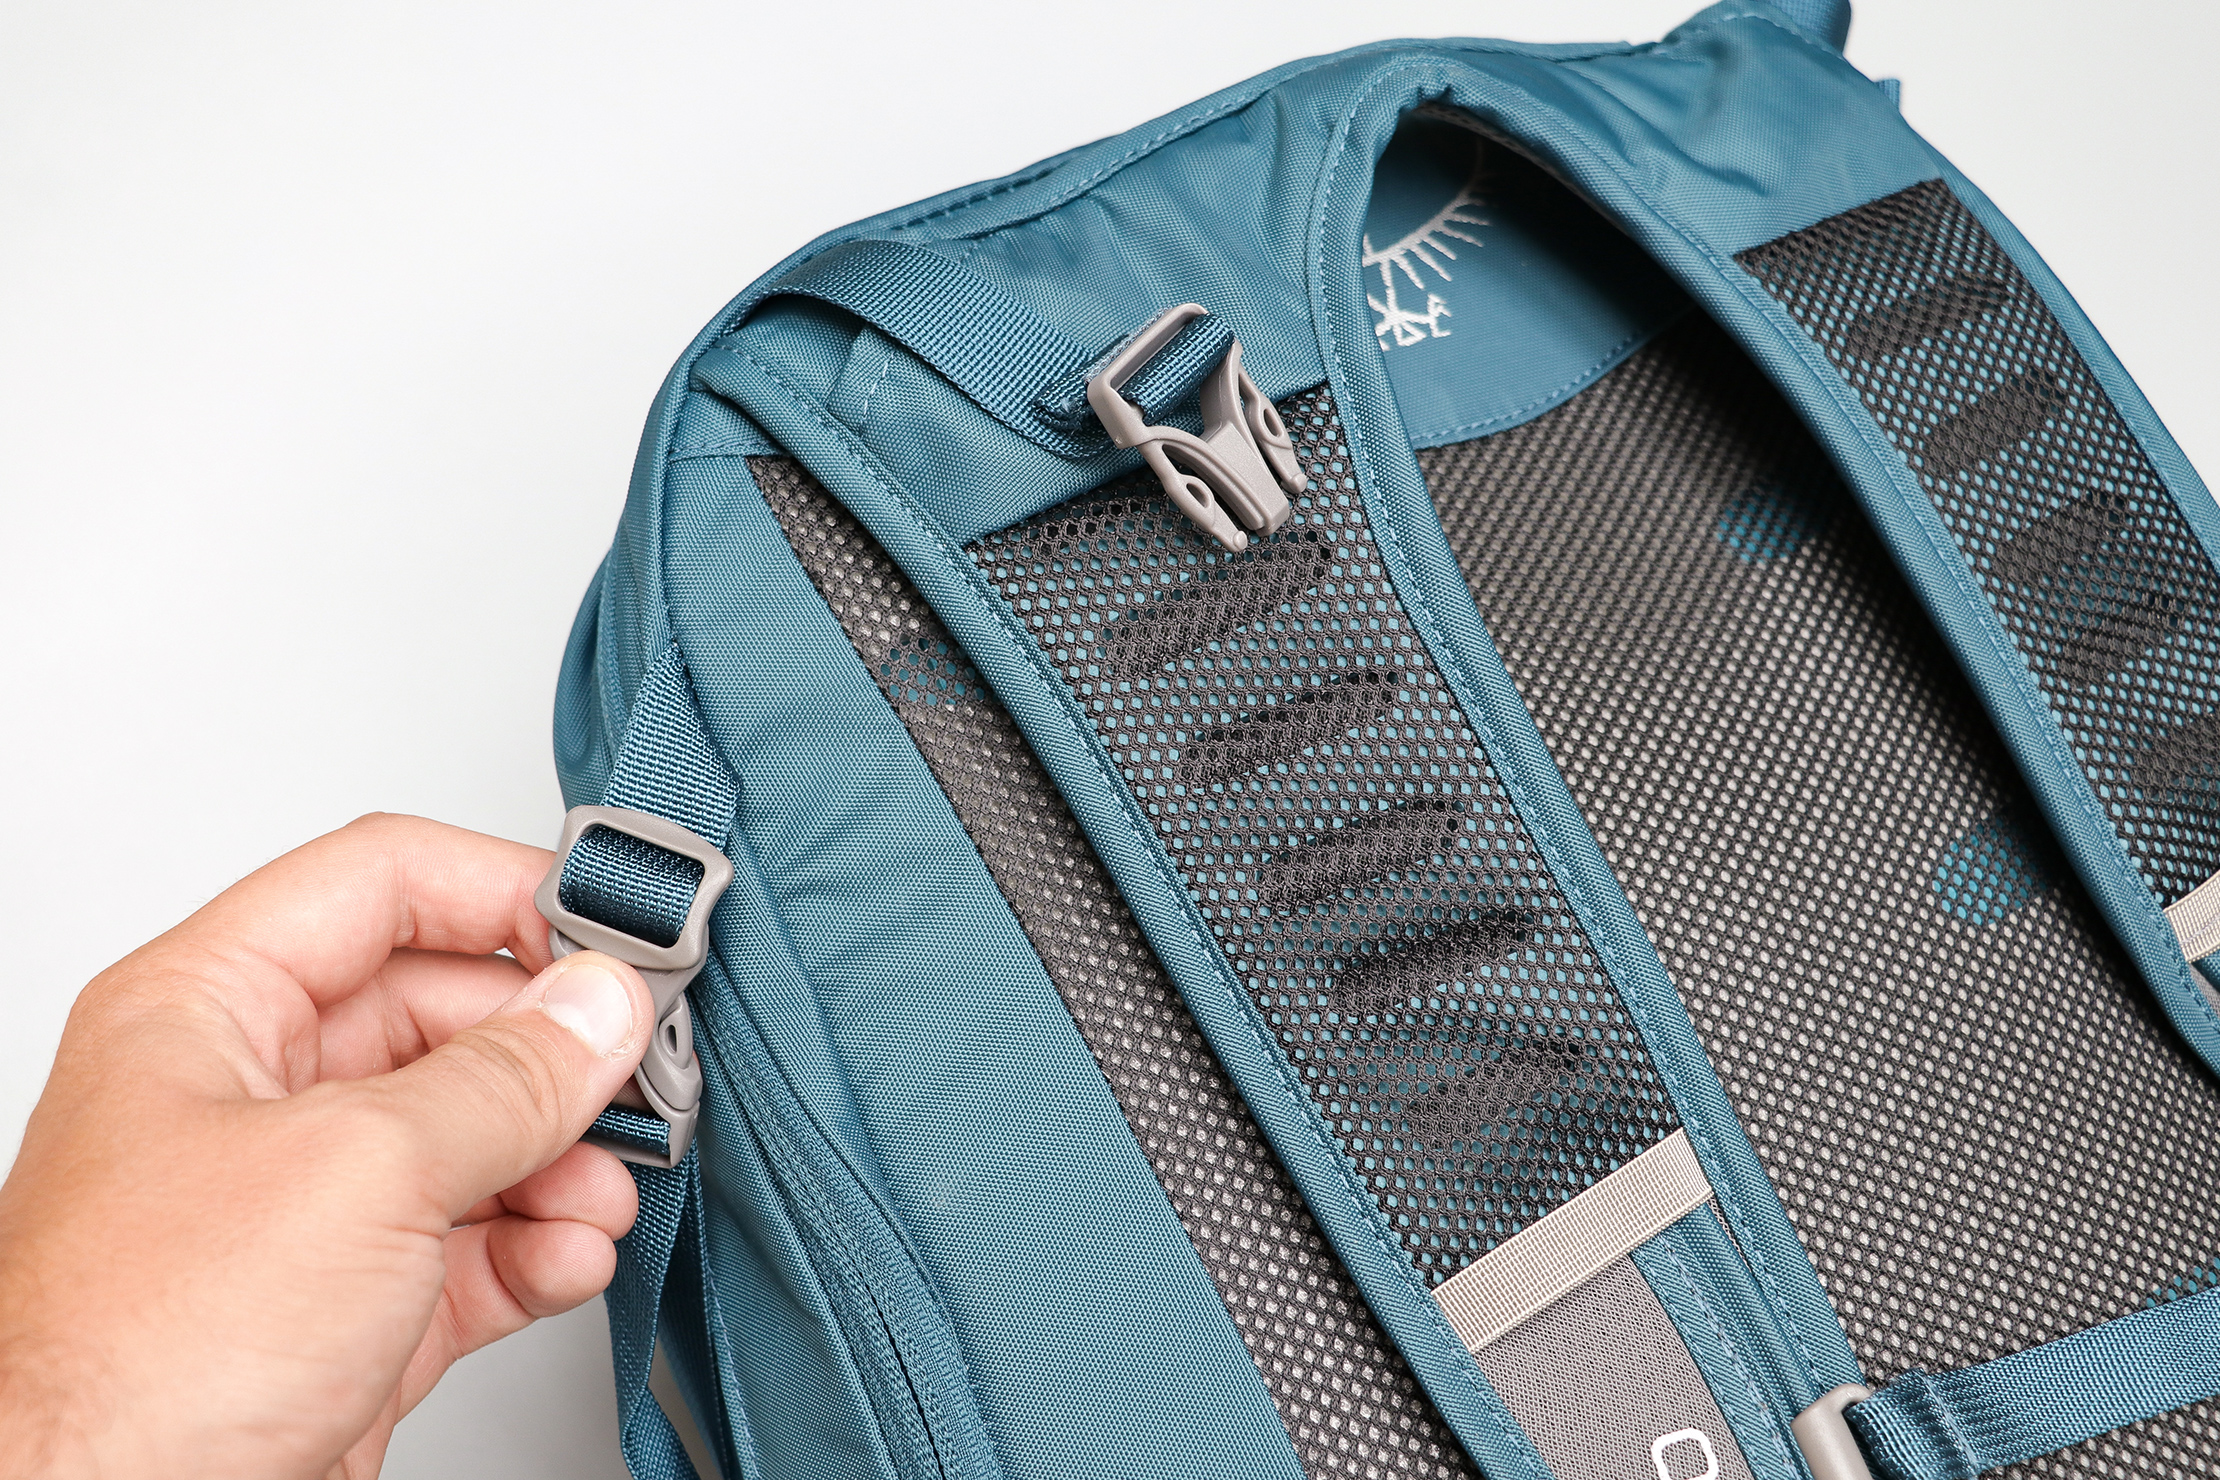 Osprey Daylite Travel Pack Attachment Points To A Larger Pack